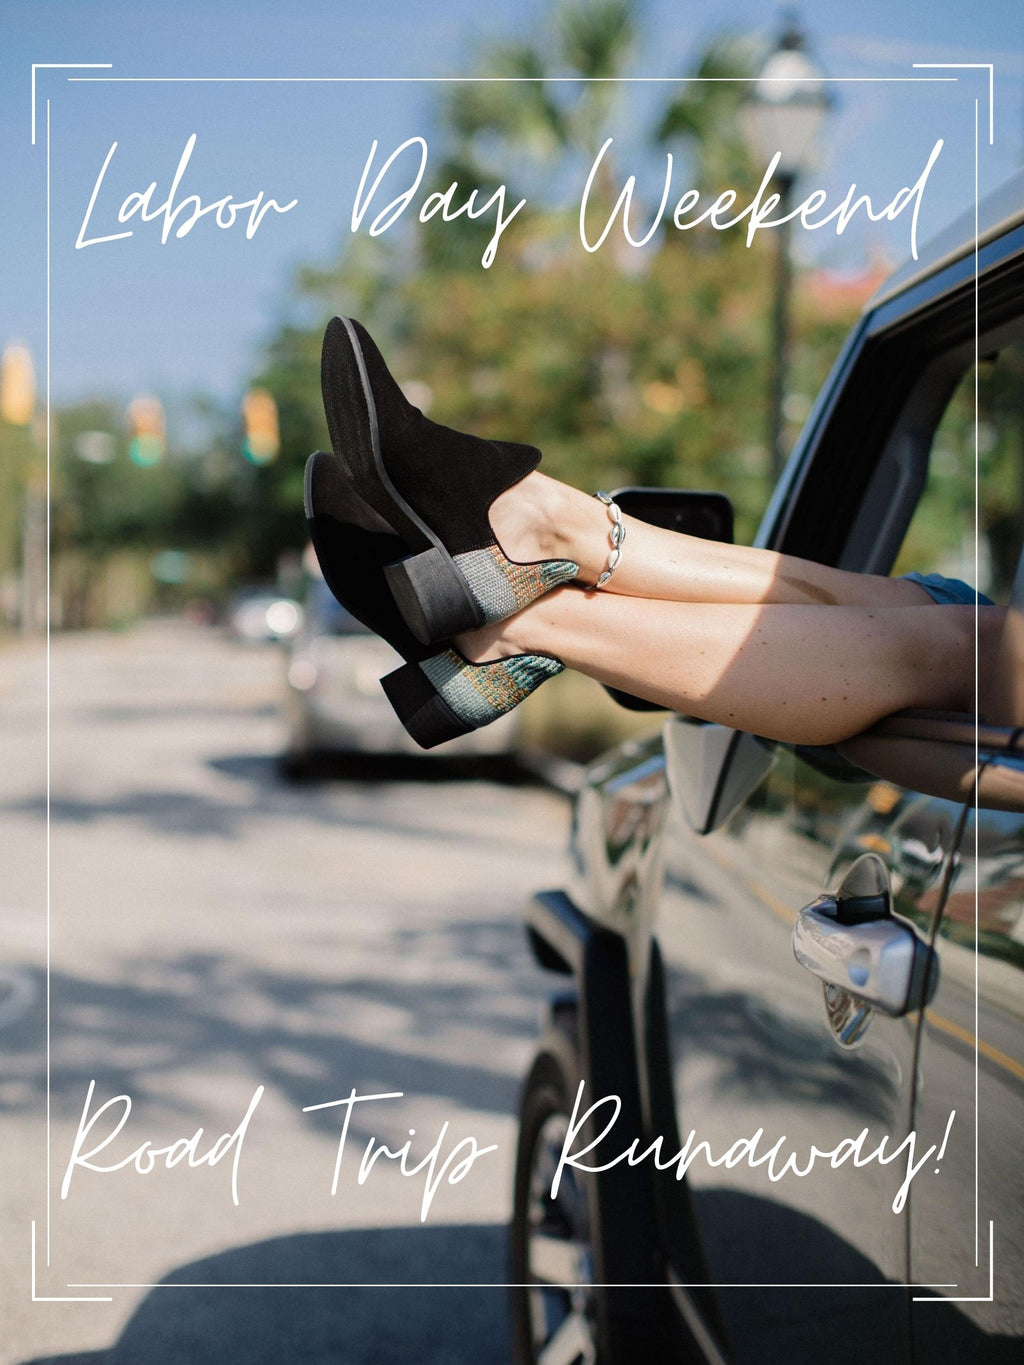 Labor Day Weekend Road Trip Runaway! 🚙